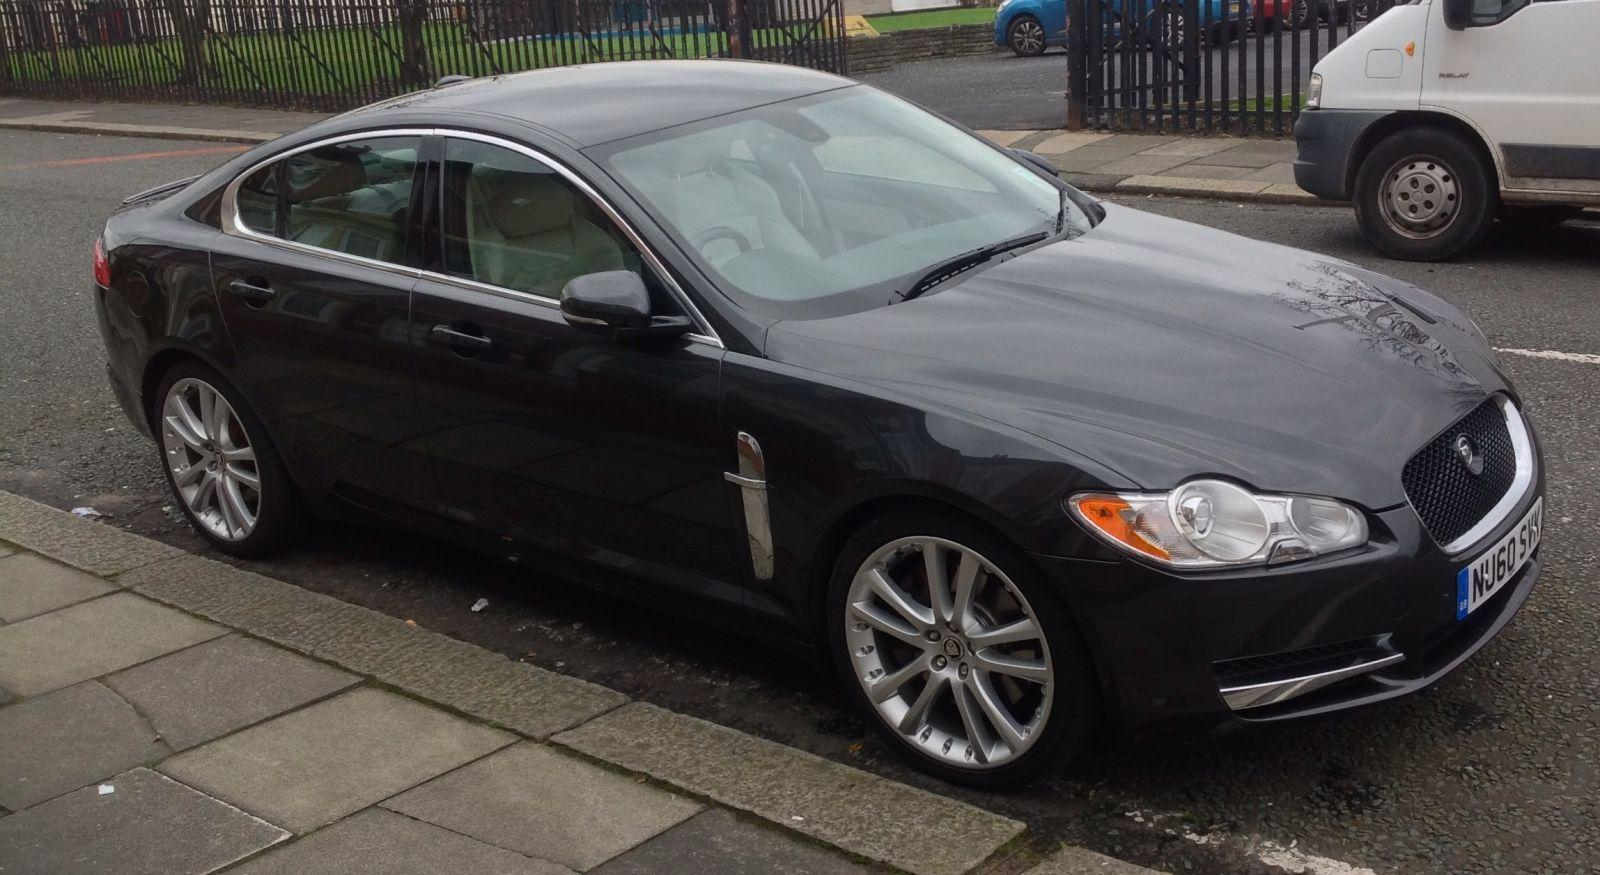 Dave's xf